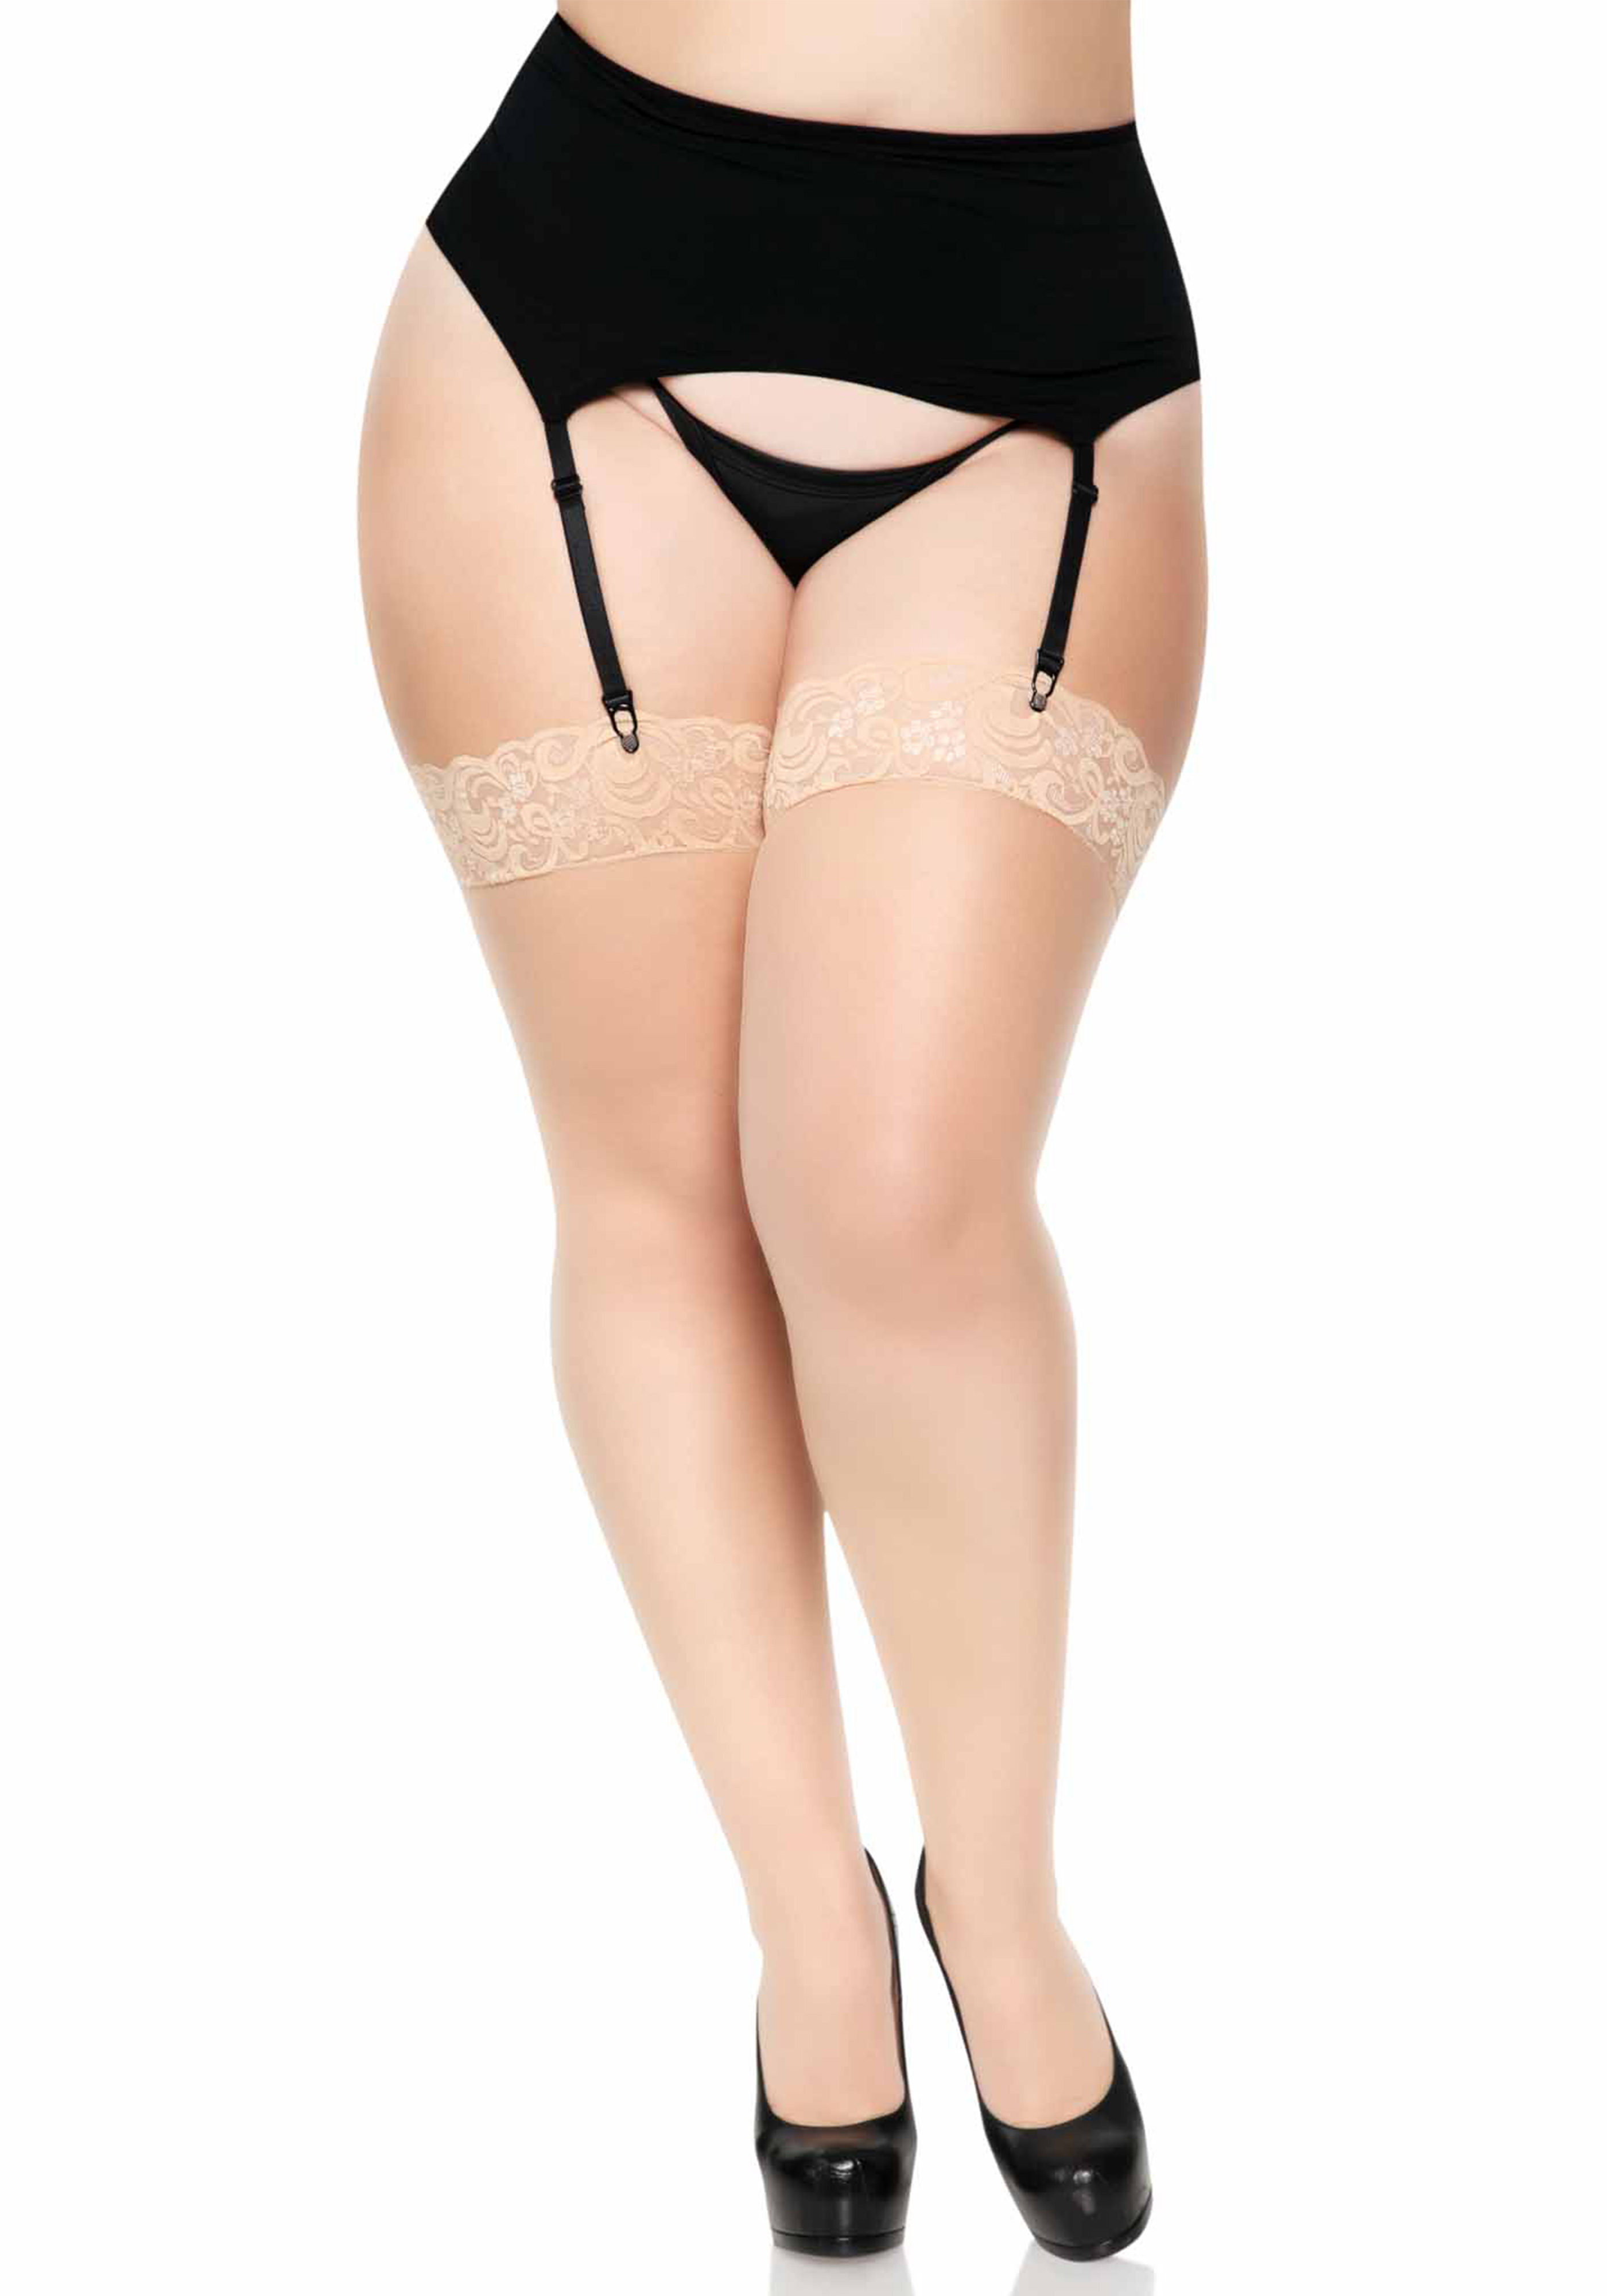 Sheer Stocking With Backseam Lace Top